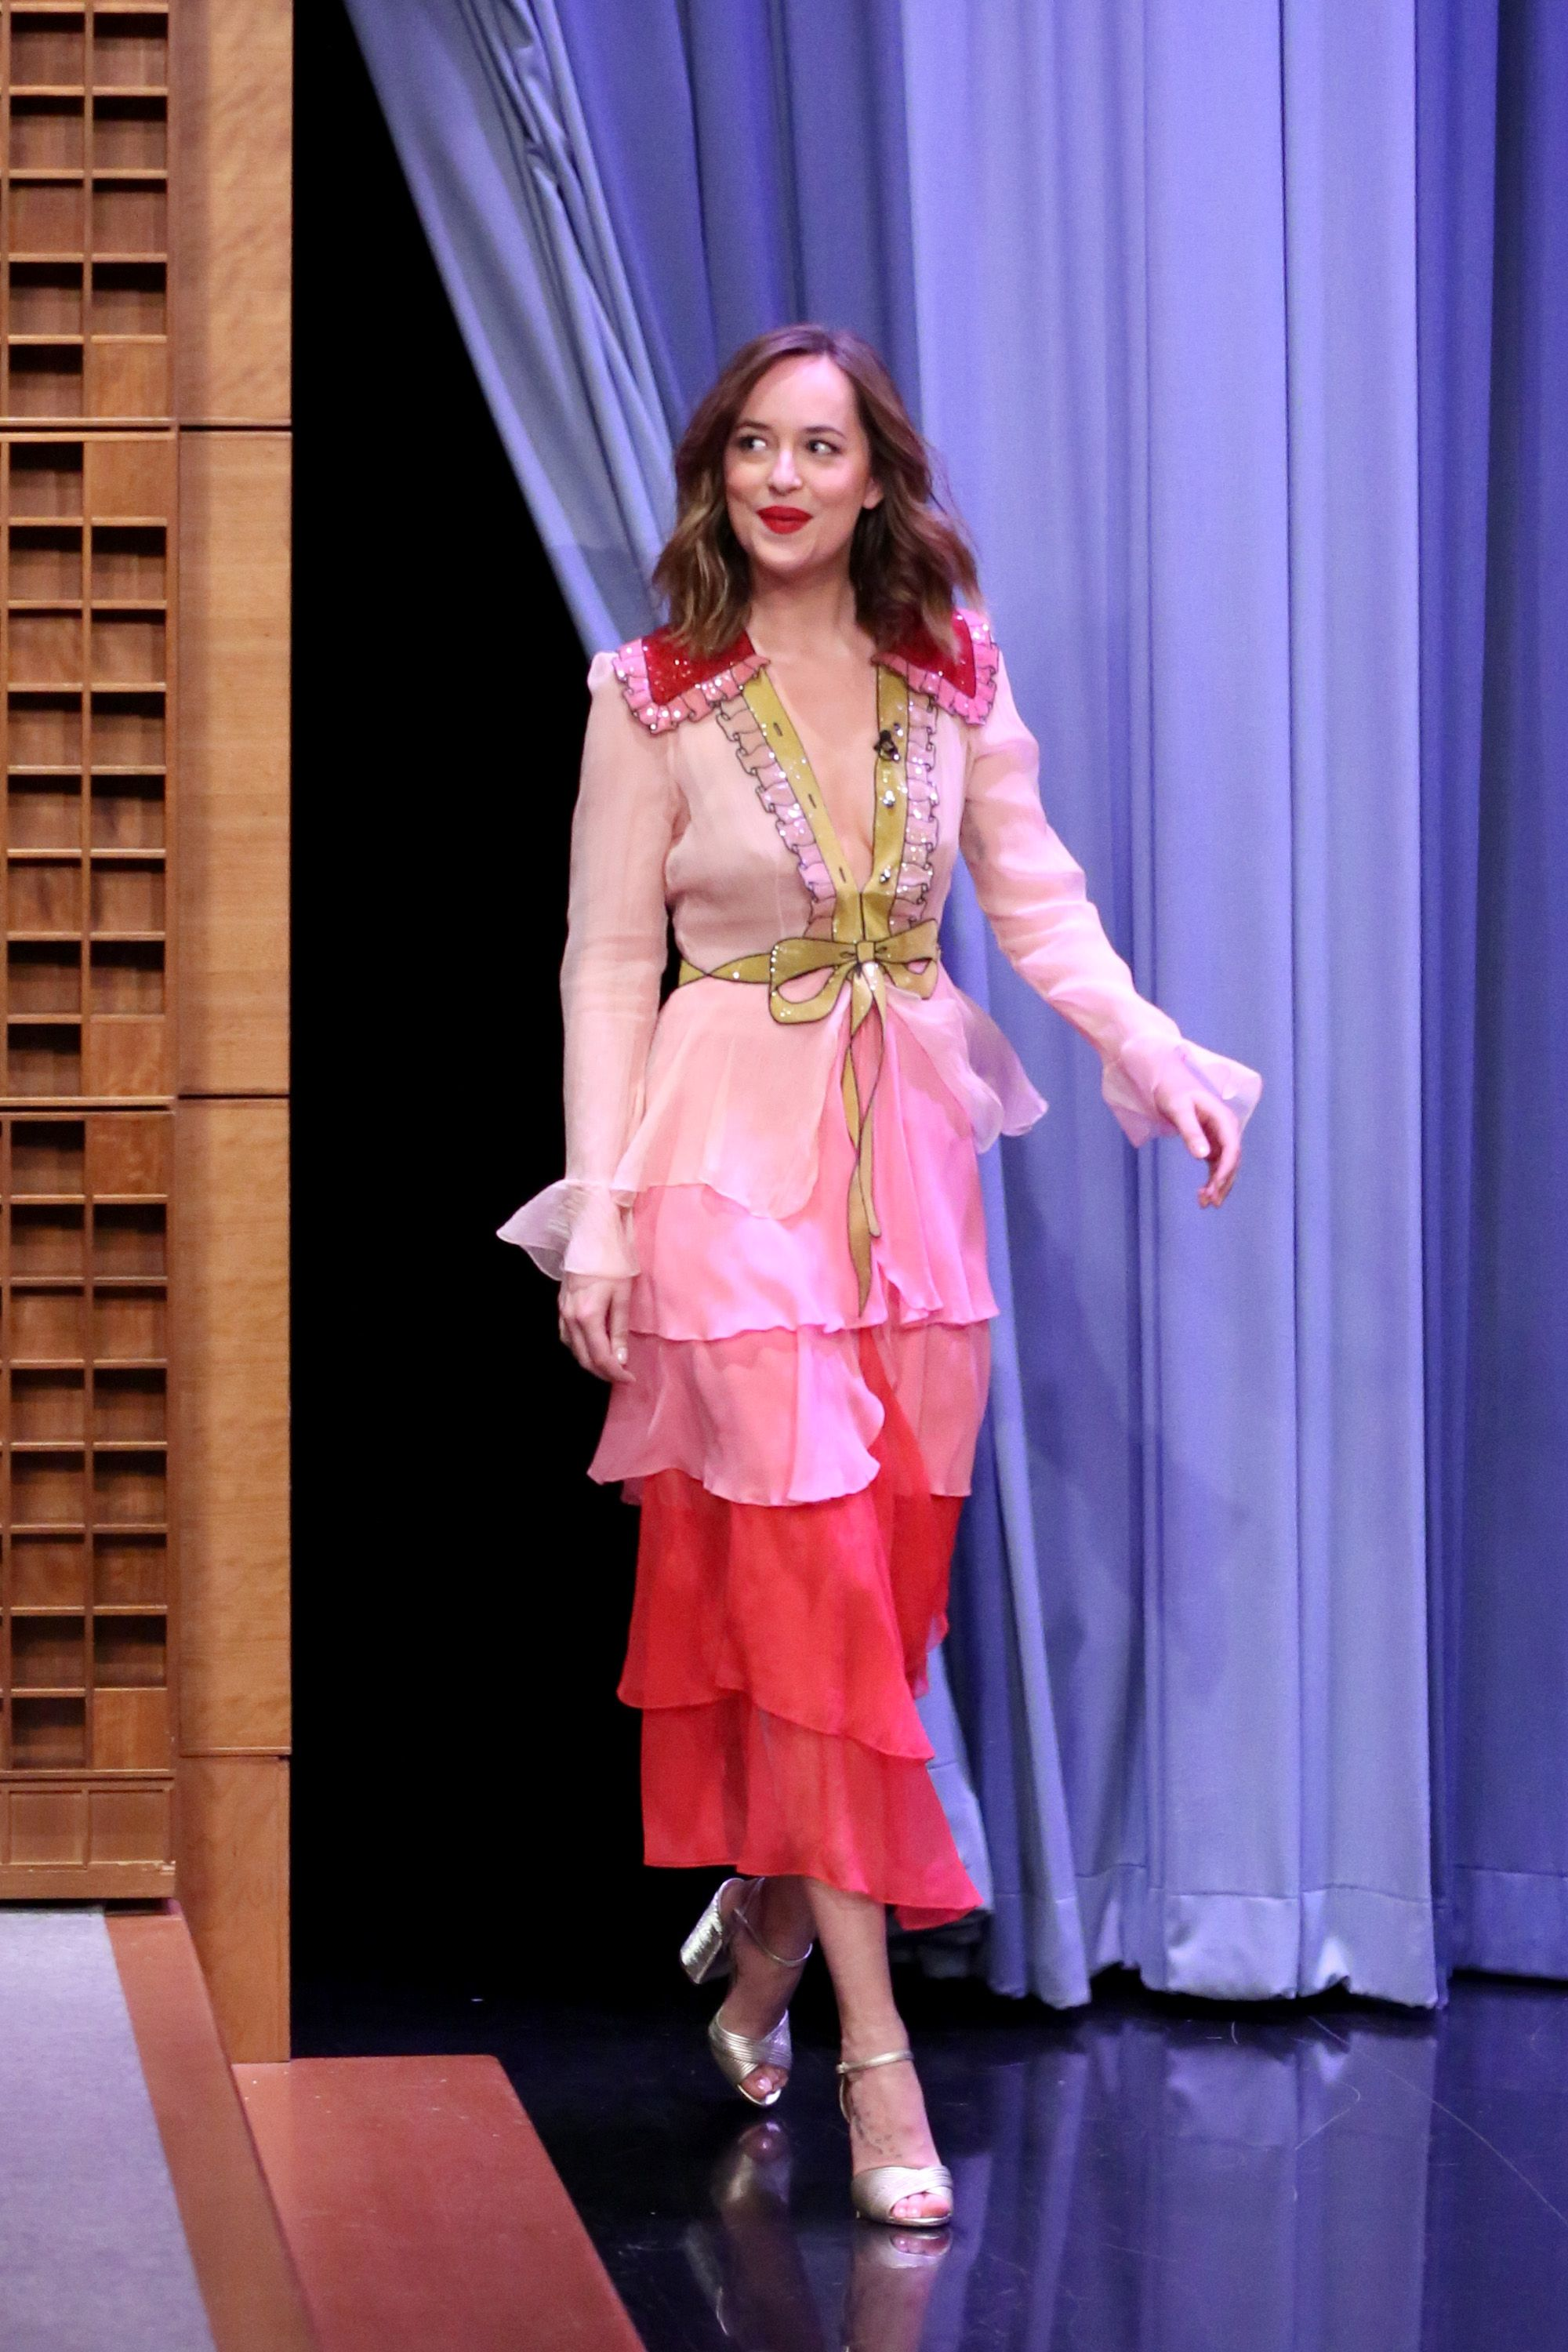 <p>Who: Dakota Johnson</p><p>When: January 20, 2016</p><p>Why: Johnson donned what is probably one our favorite looks from Gucci's Spring collection. With its sequin embellishments and pink ombre flirty tiered skirt, it's another great look to add to her ever-inspiring style. </p>